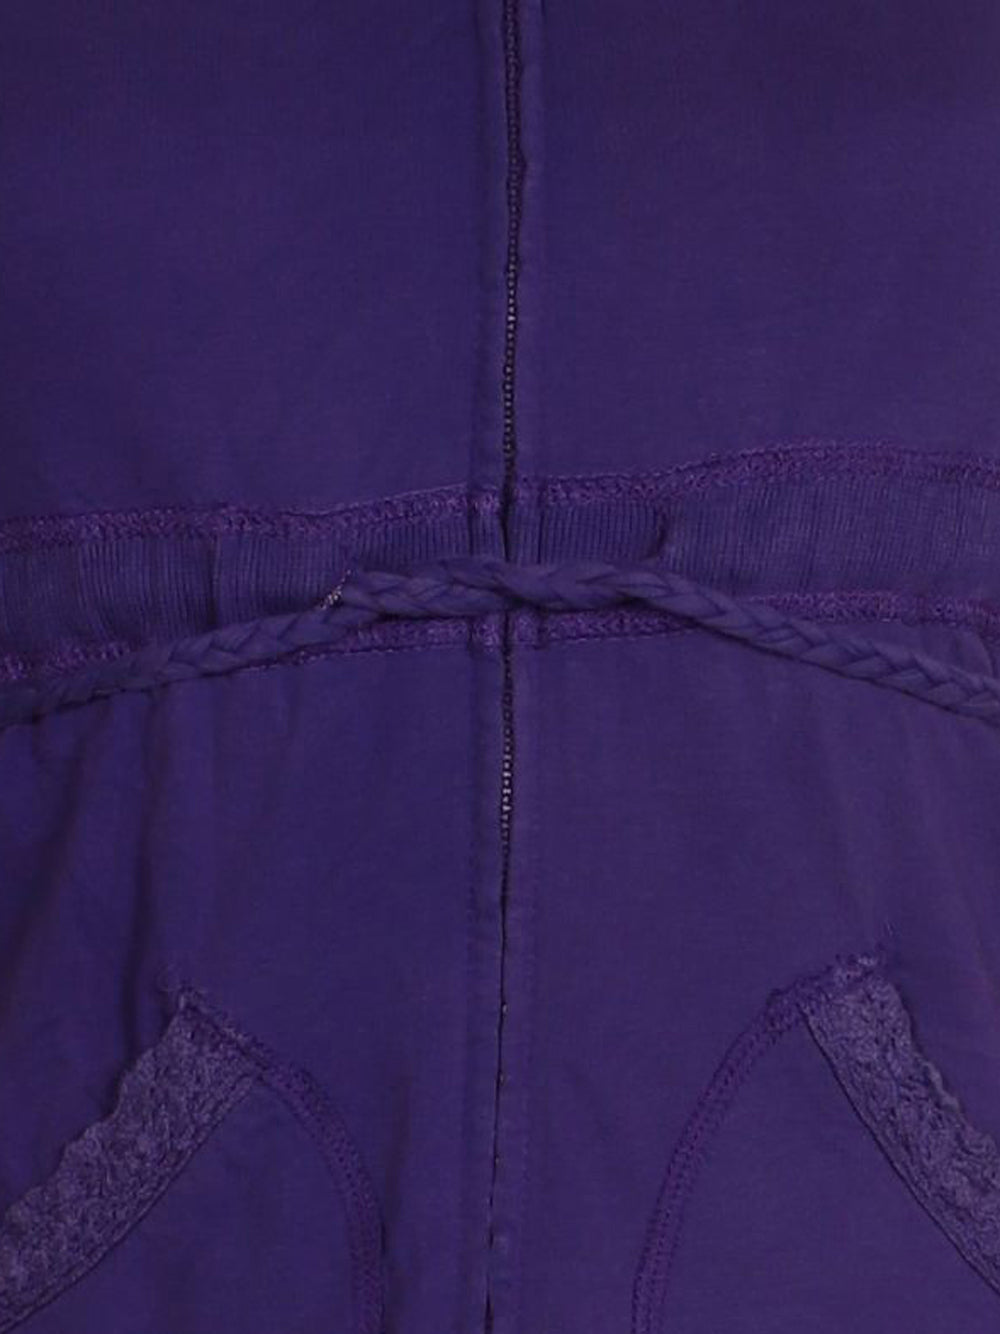 Detail photo of Preloved Silvian Heach Violet Woman's sweatshirt - size 8/S